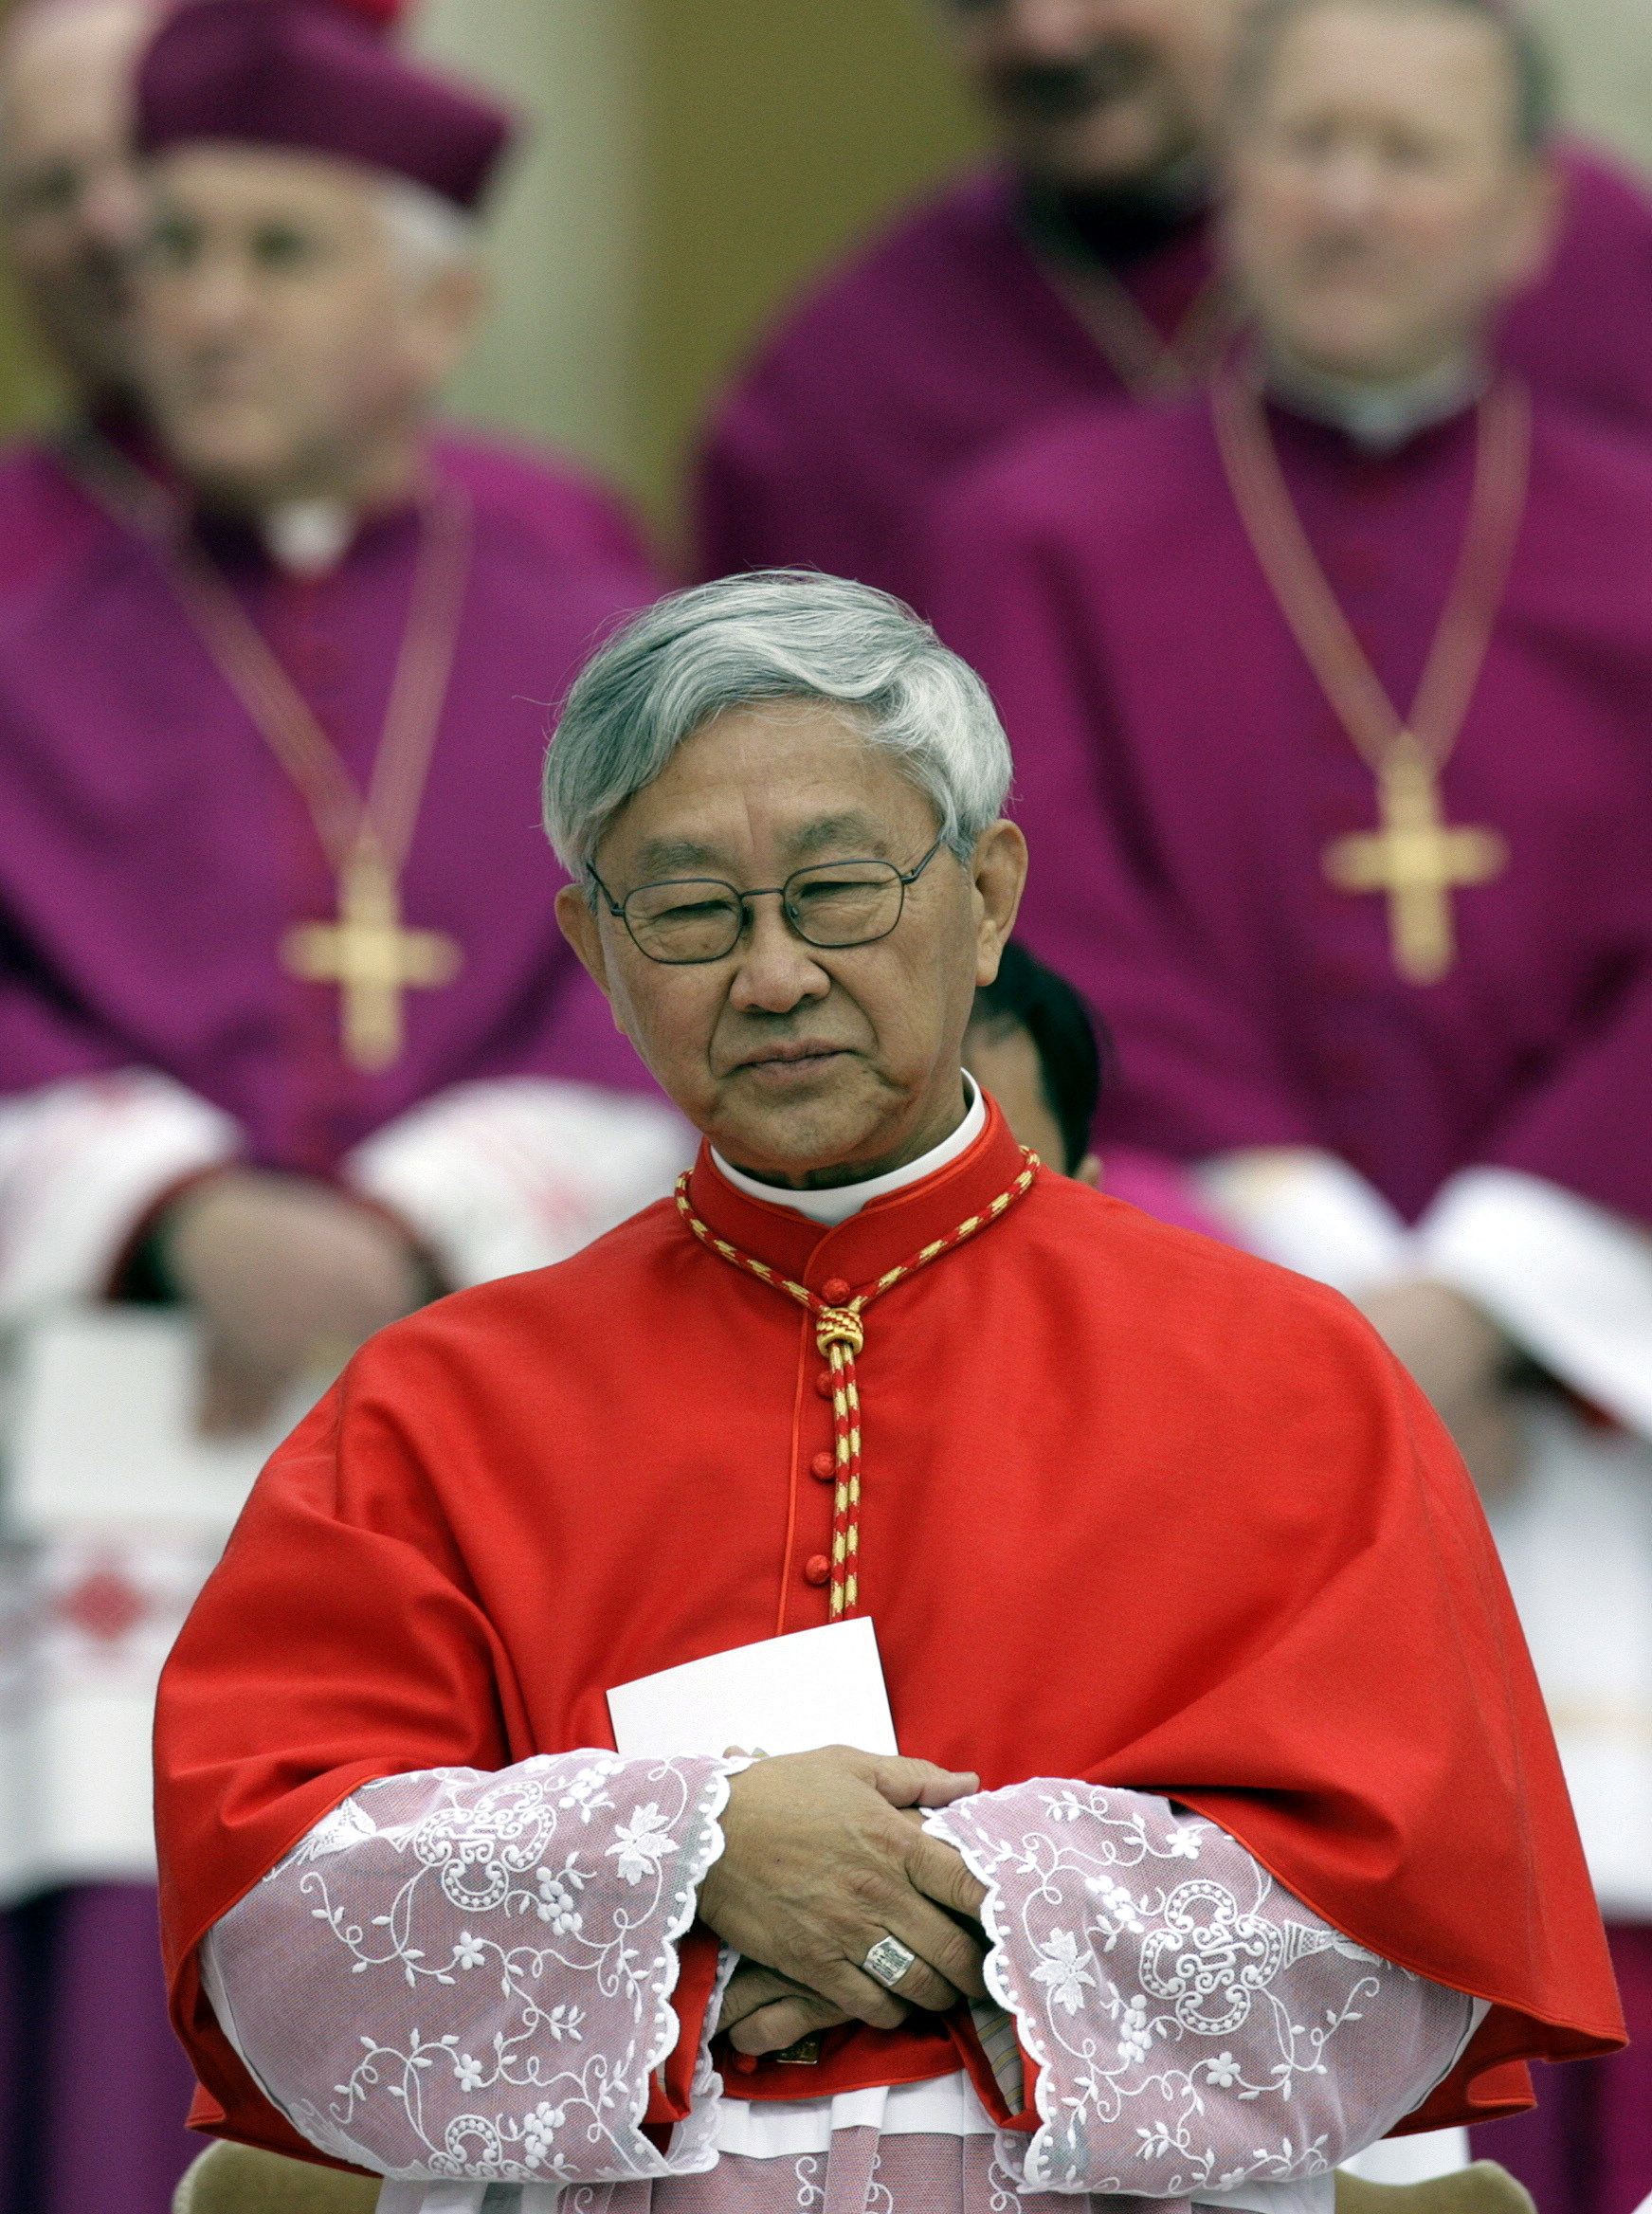 Hong Kong's Bishop Joseph Zen Ze-kiun attends a ceremony to be elevated to cardinal by [Pope Benedict XVI] at the Vatican March 24, 2006. Pope Benedict installs his first group of new cardinals on Friday, elevating a familiar face and some surprising choices to the exclusive Roman Catholic club that advises him and will one day elect his successor.